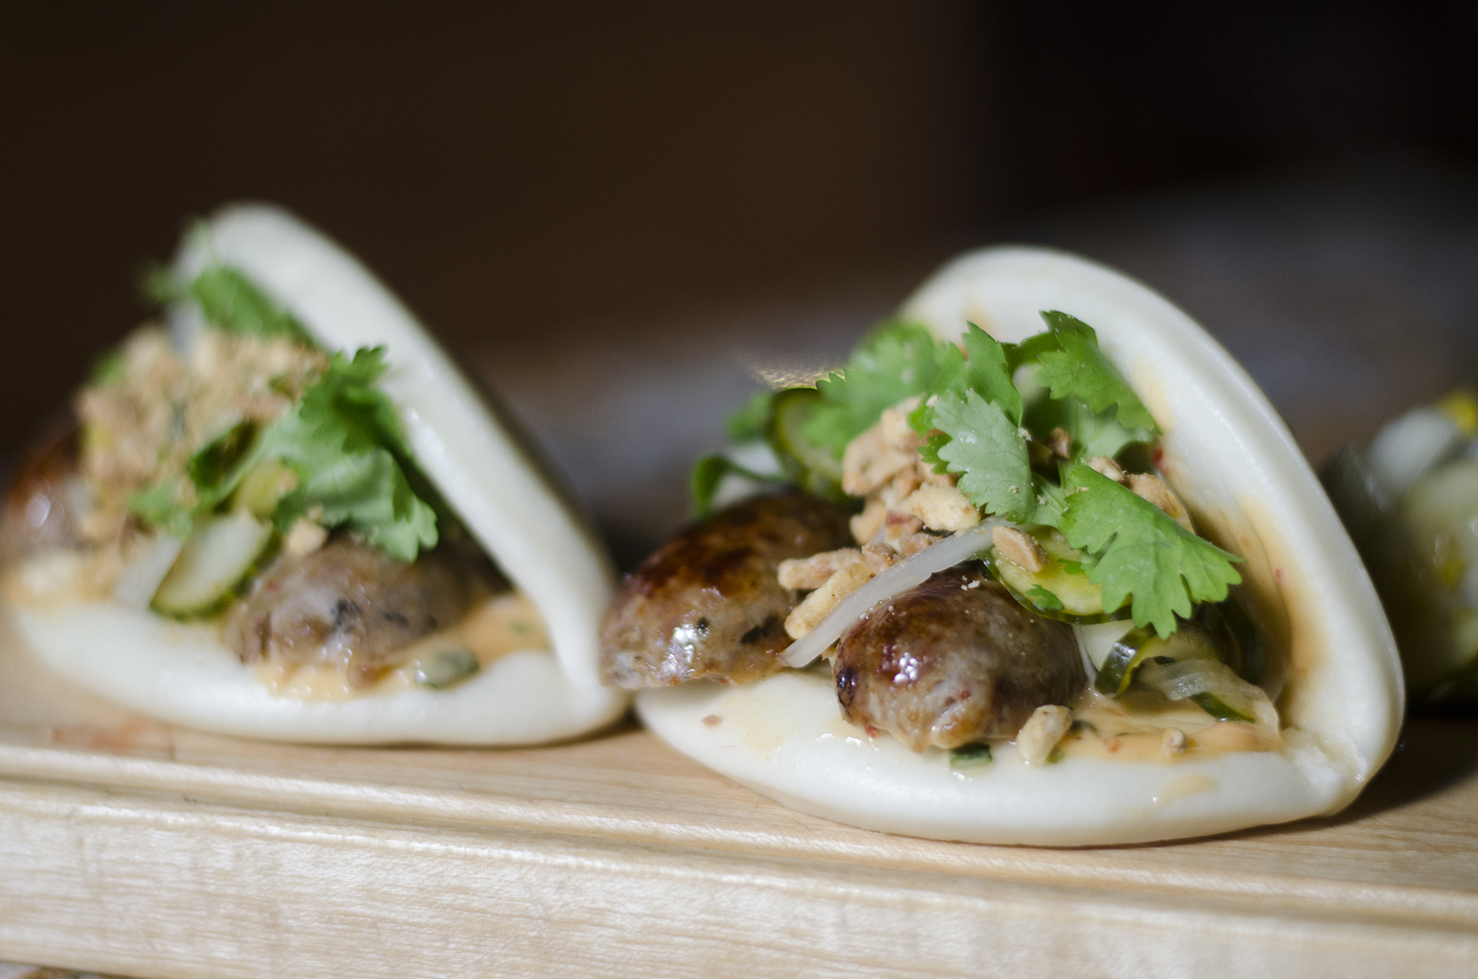 One of the tastiest Bao Buns we've ever had.